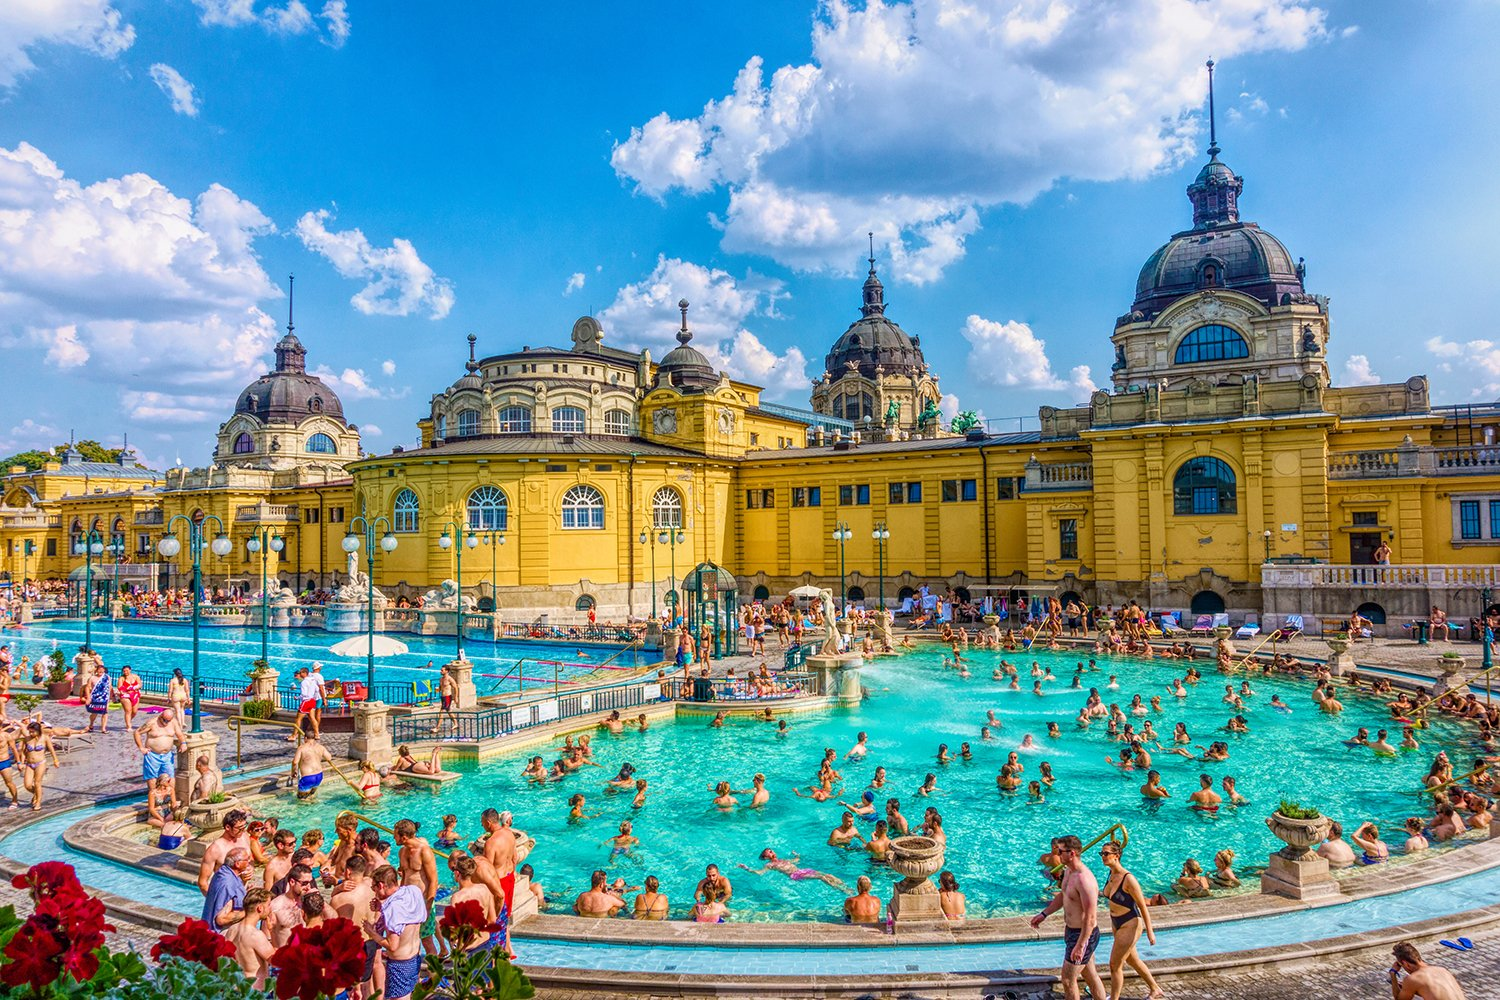 Secheni Thermal Baths in Budapest, Hungary example image 1